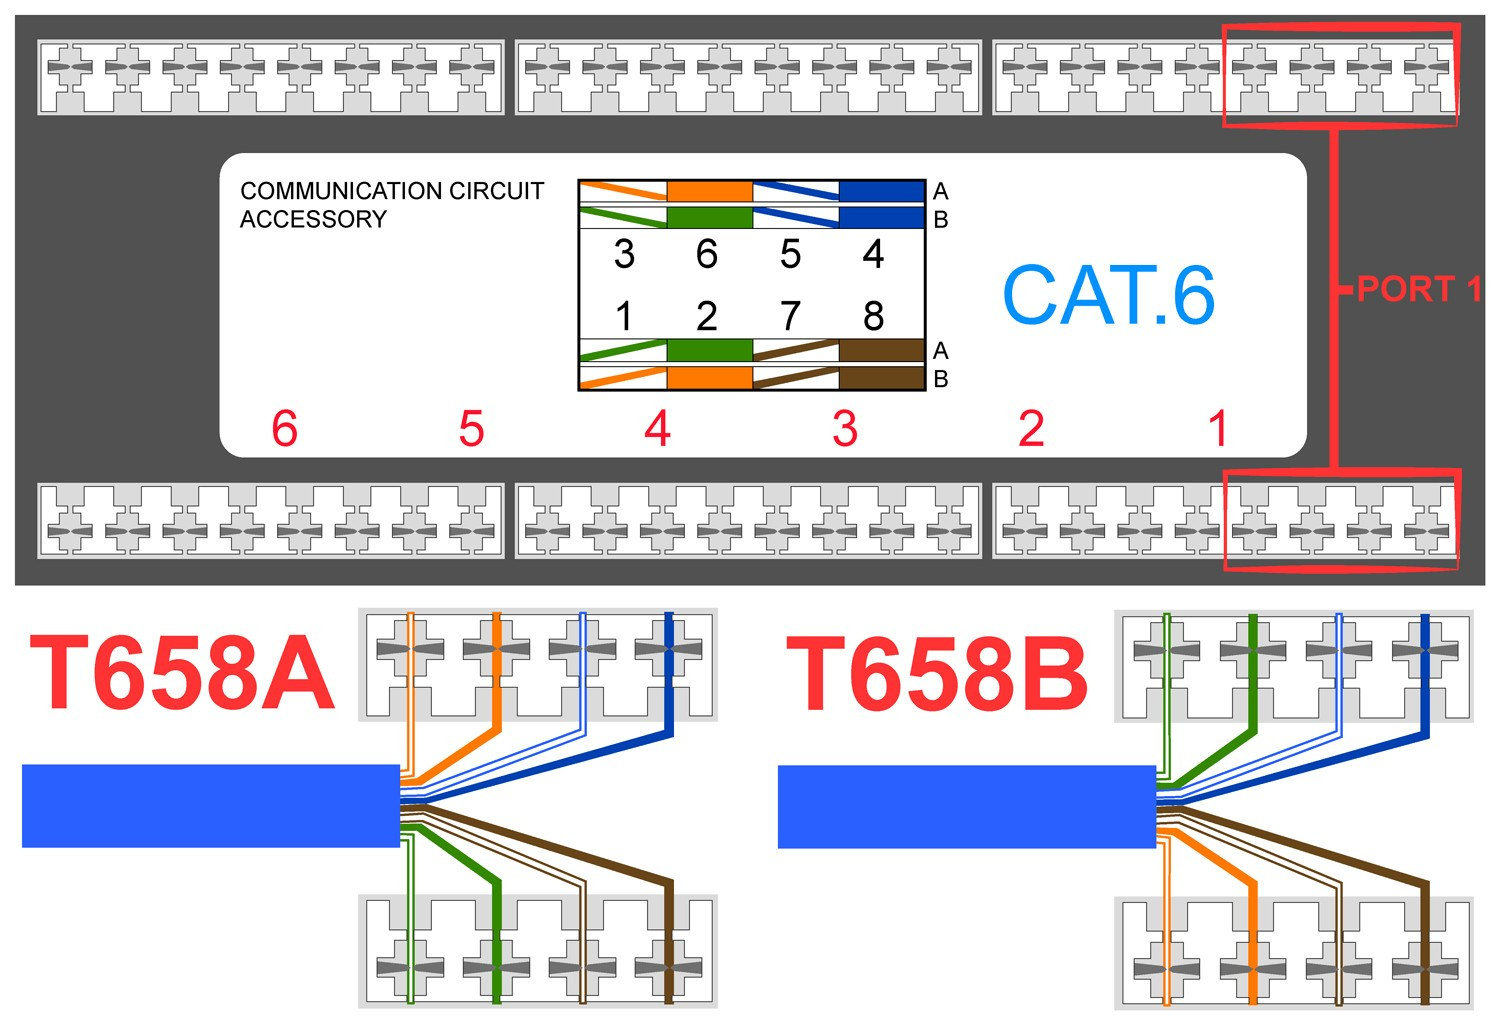 Rj45 B Wiring Diagram Cat 6 568C Cable And 568B Facybulka Me - 568 B Wiring Diagram